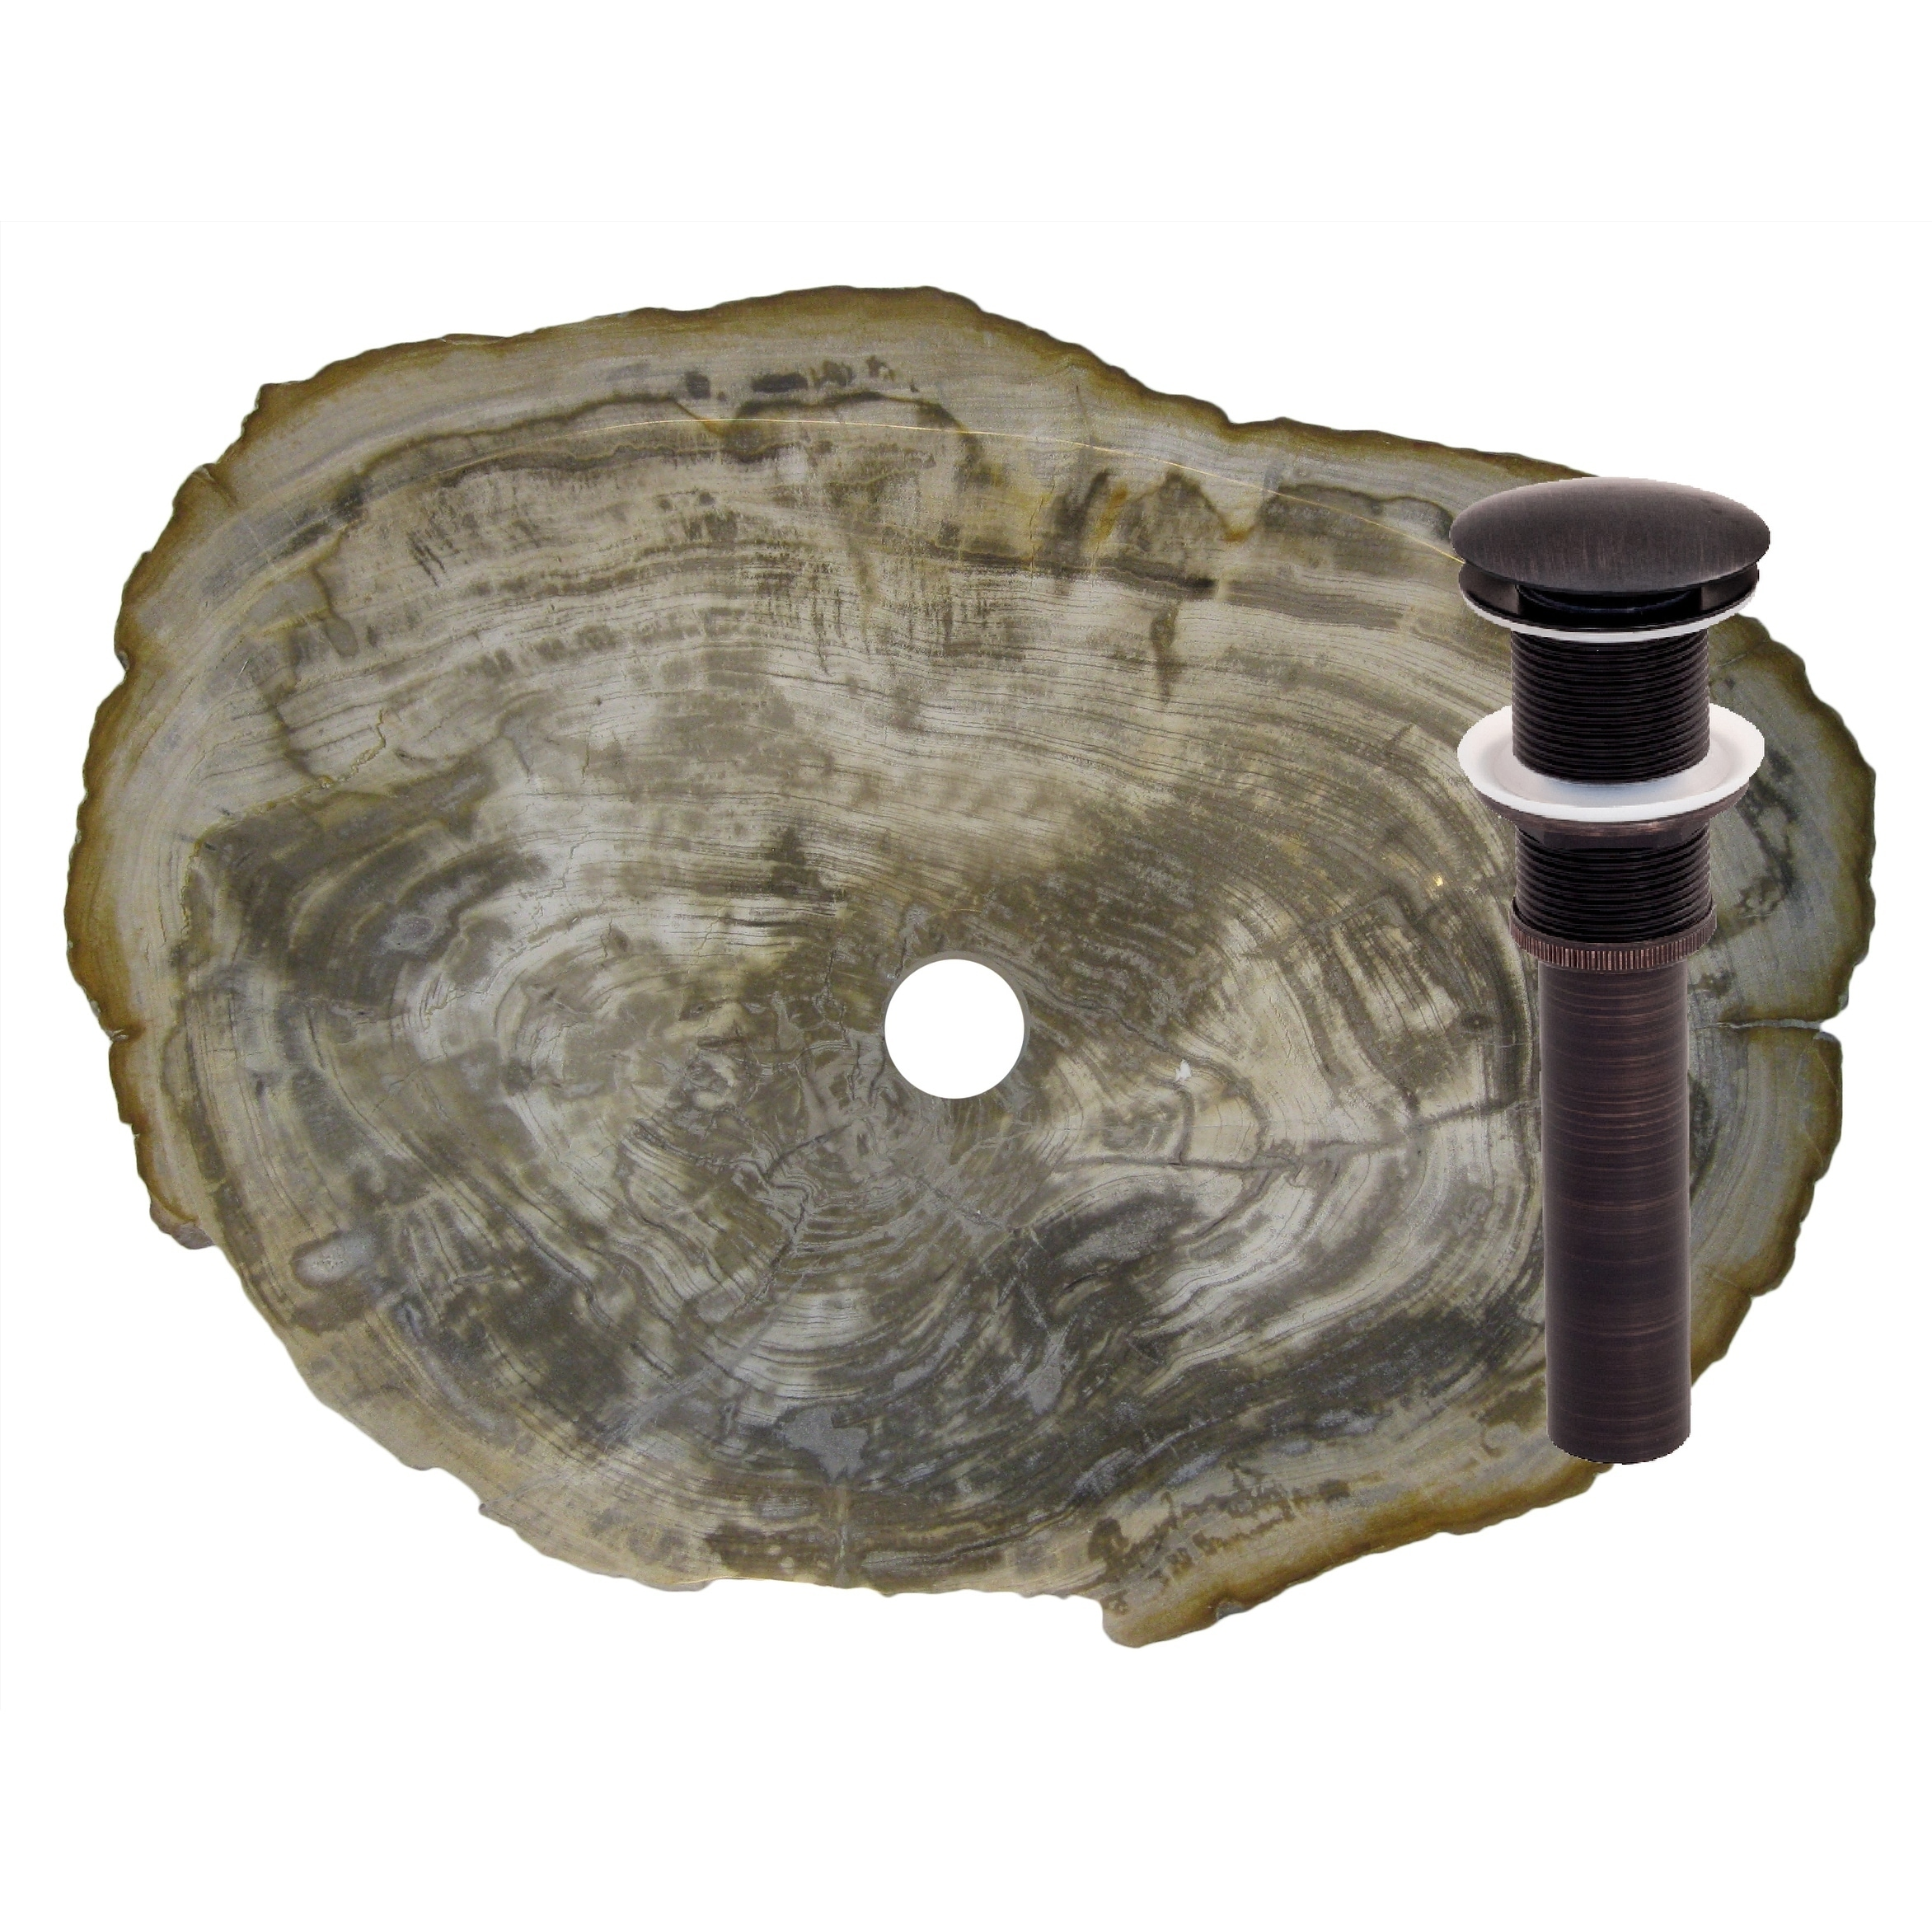 Novatto Fossil Wood Vessel Sink and Oil Rubbed Bronze Umb...